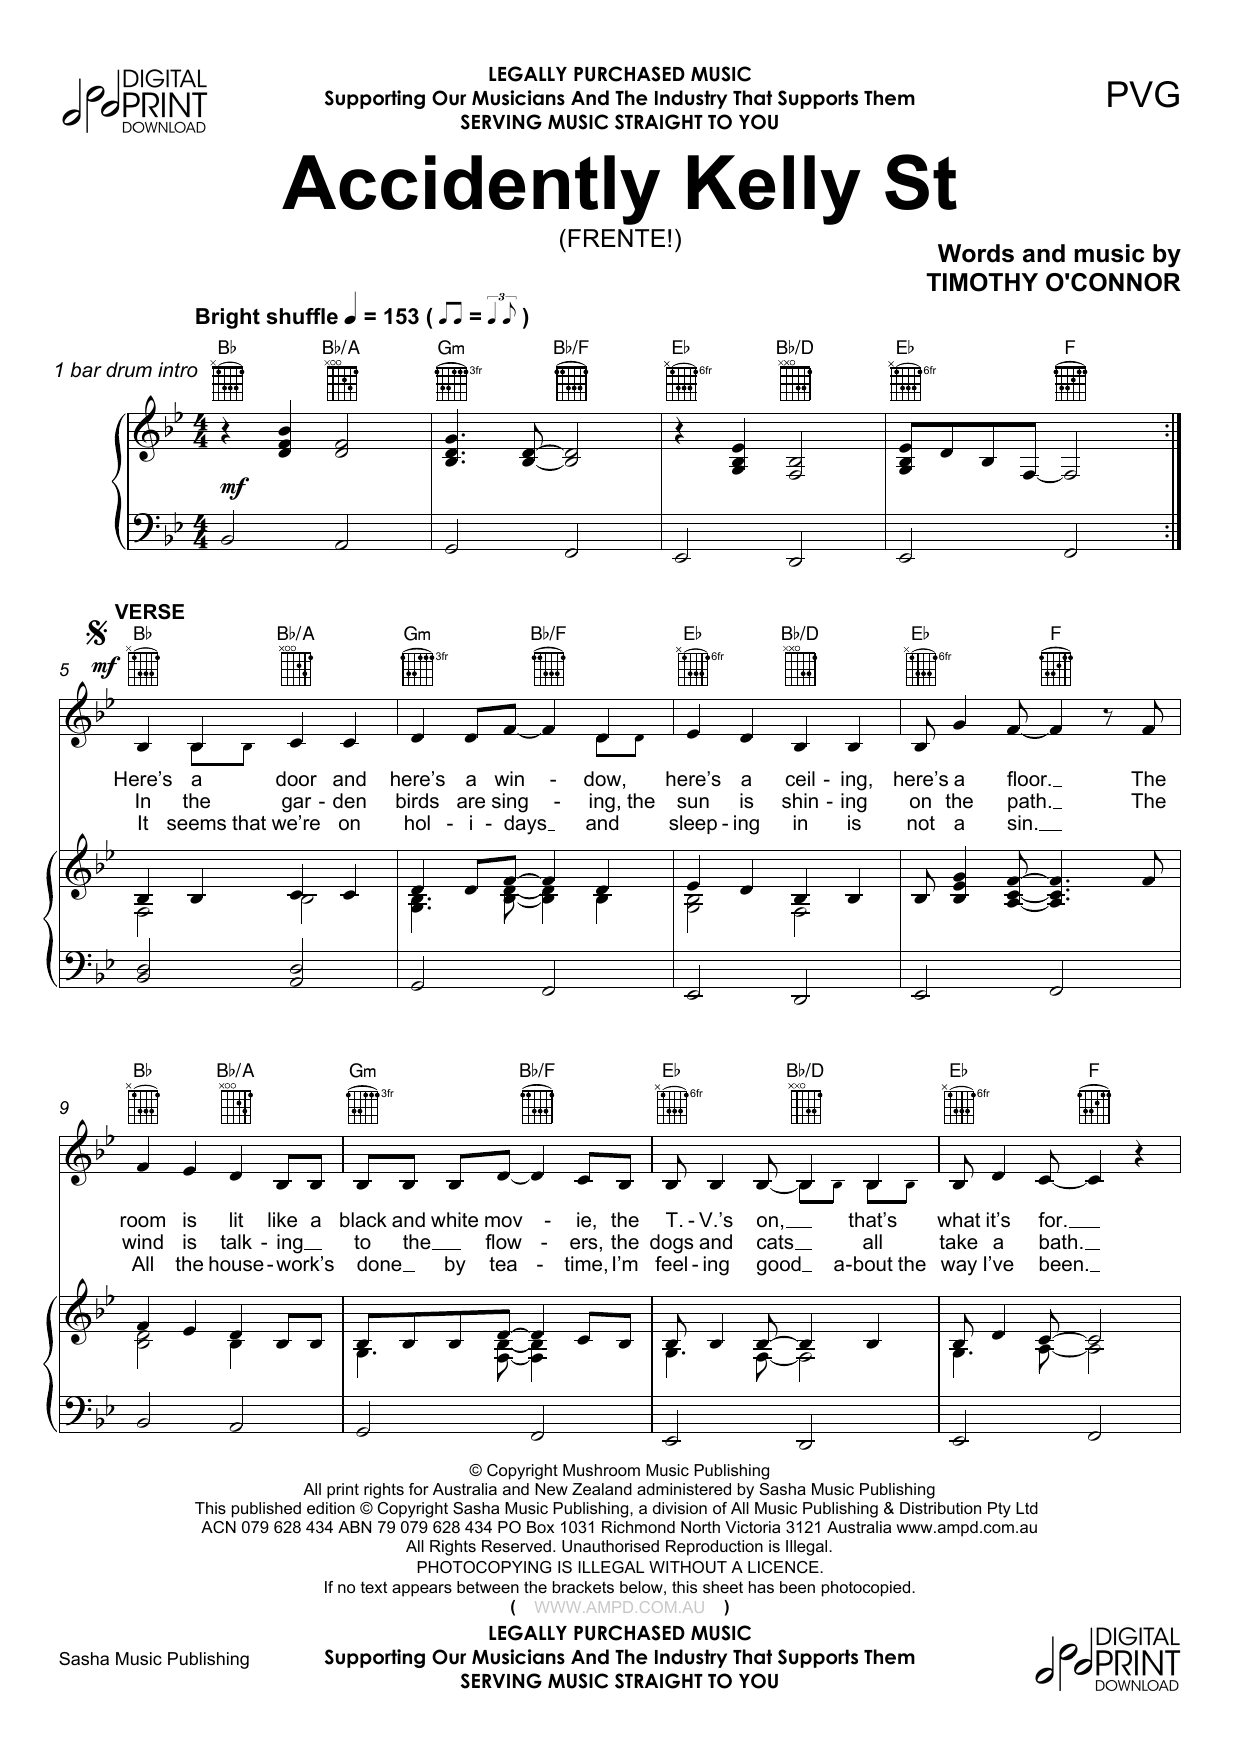 Accidently Kelly St Sheet Music